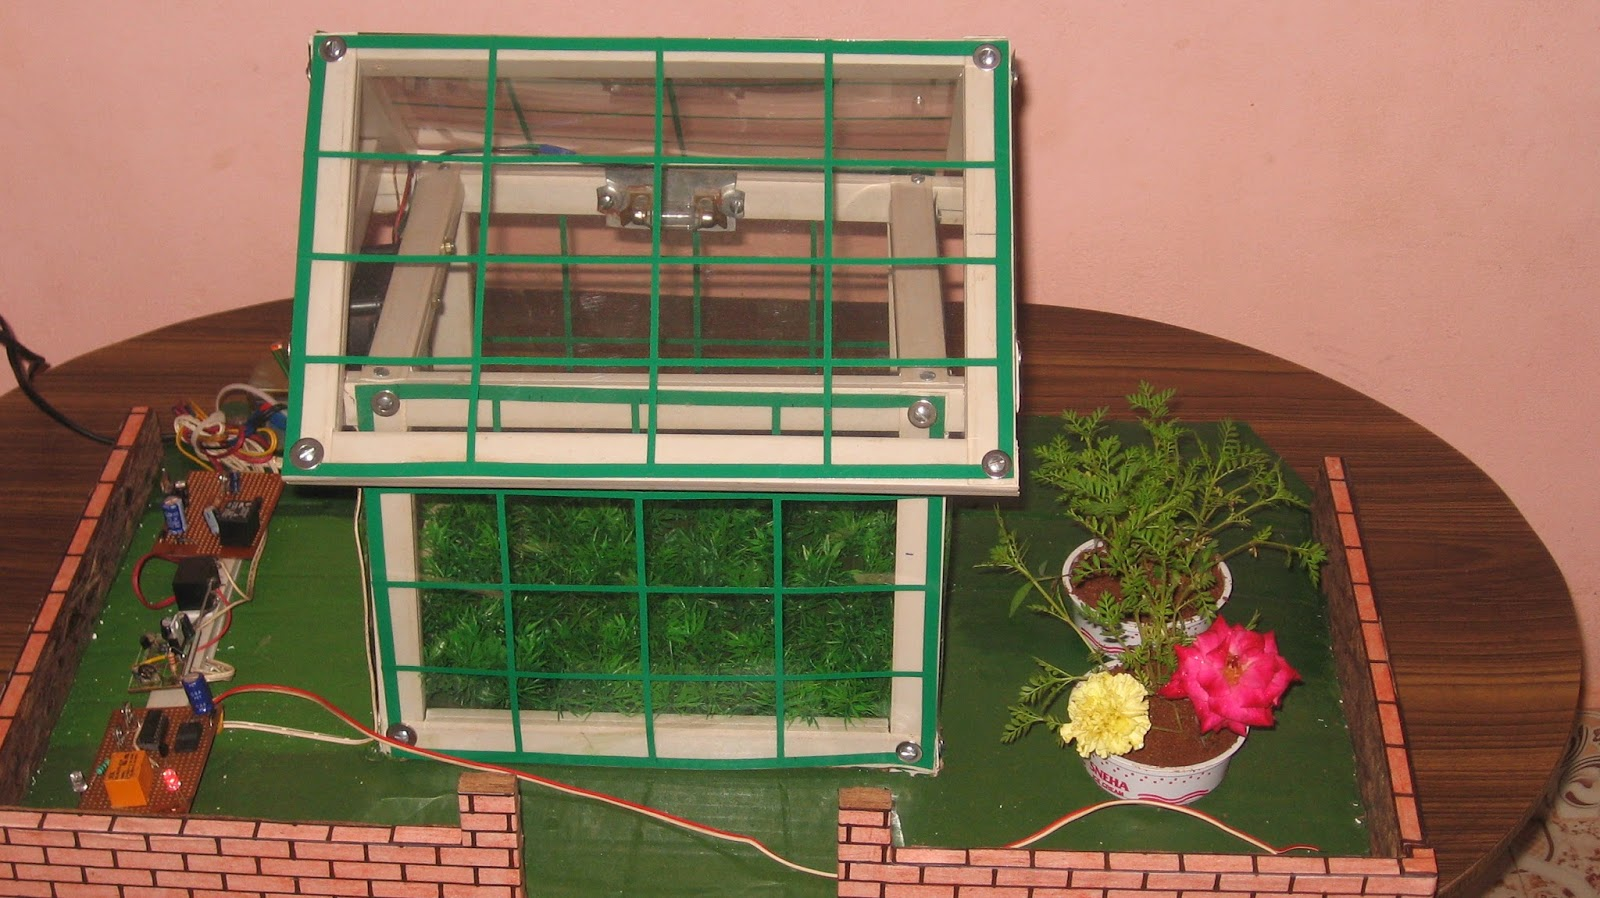 Green house model for school  House best art - Cannon House Office Building Floor Plan